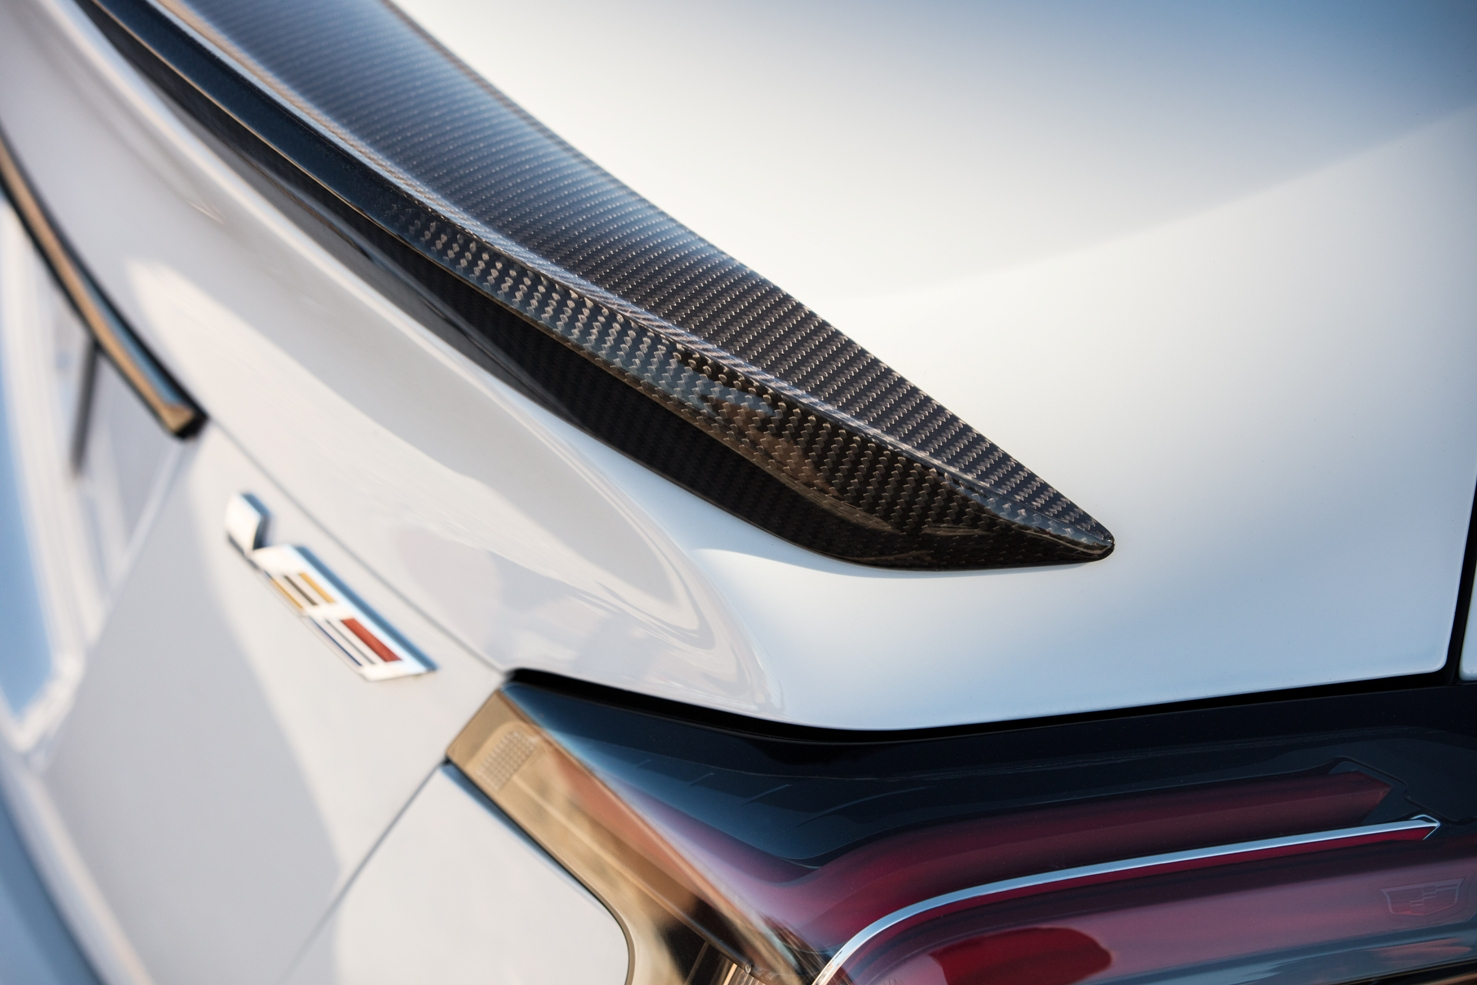 2022 Cadillac Blackwing rear spoiler